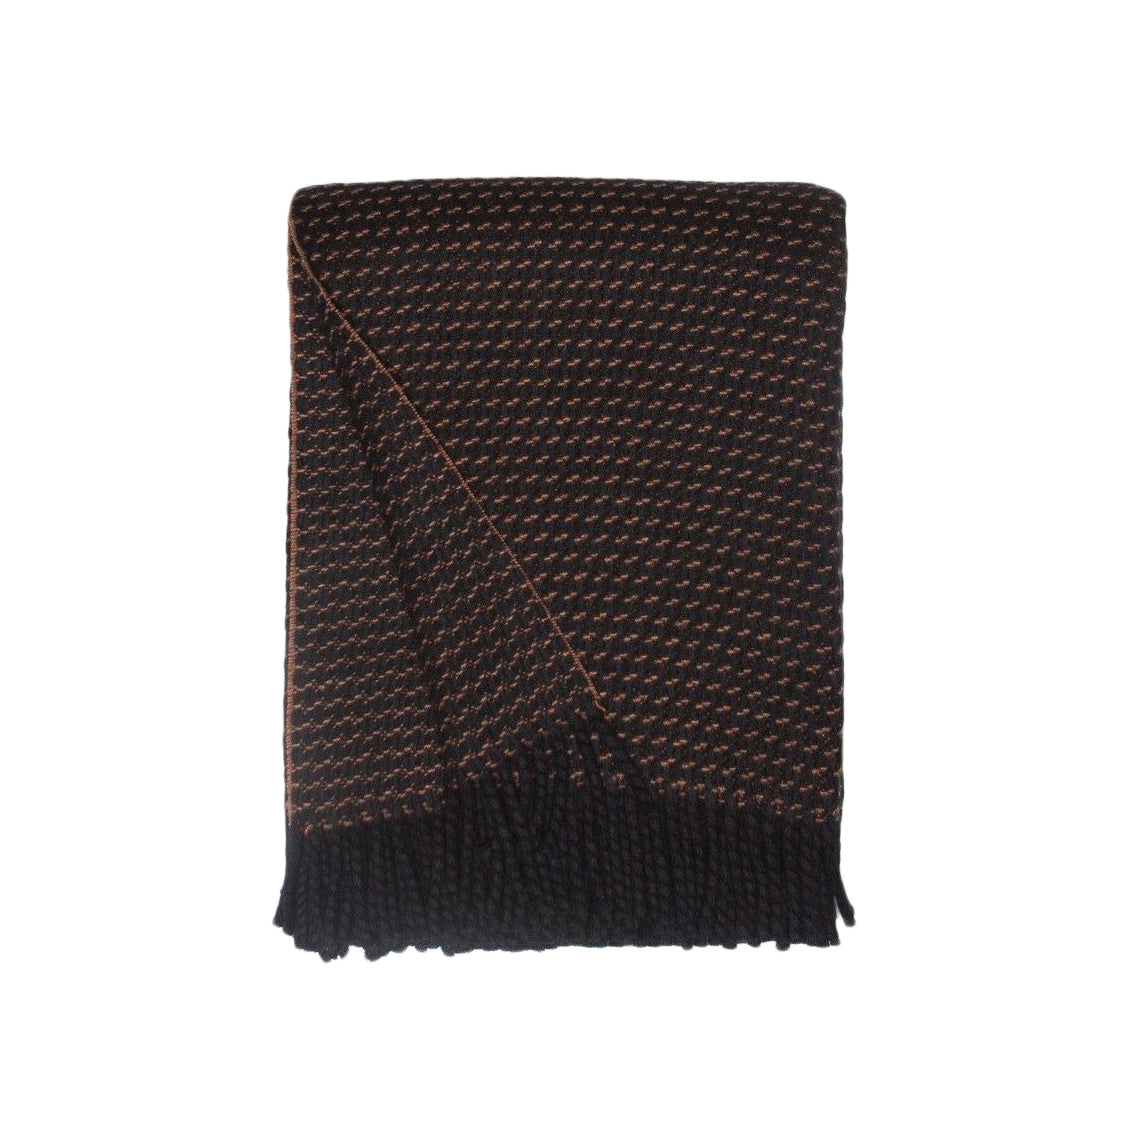 Clyde Honeycomb Cashmere Throw